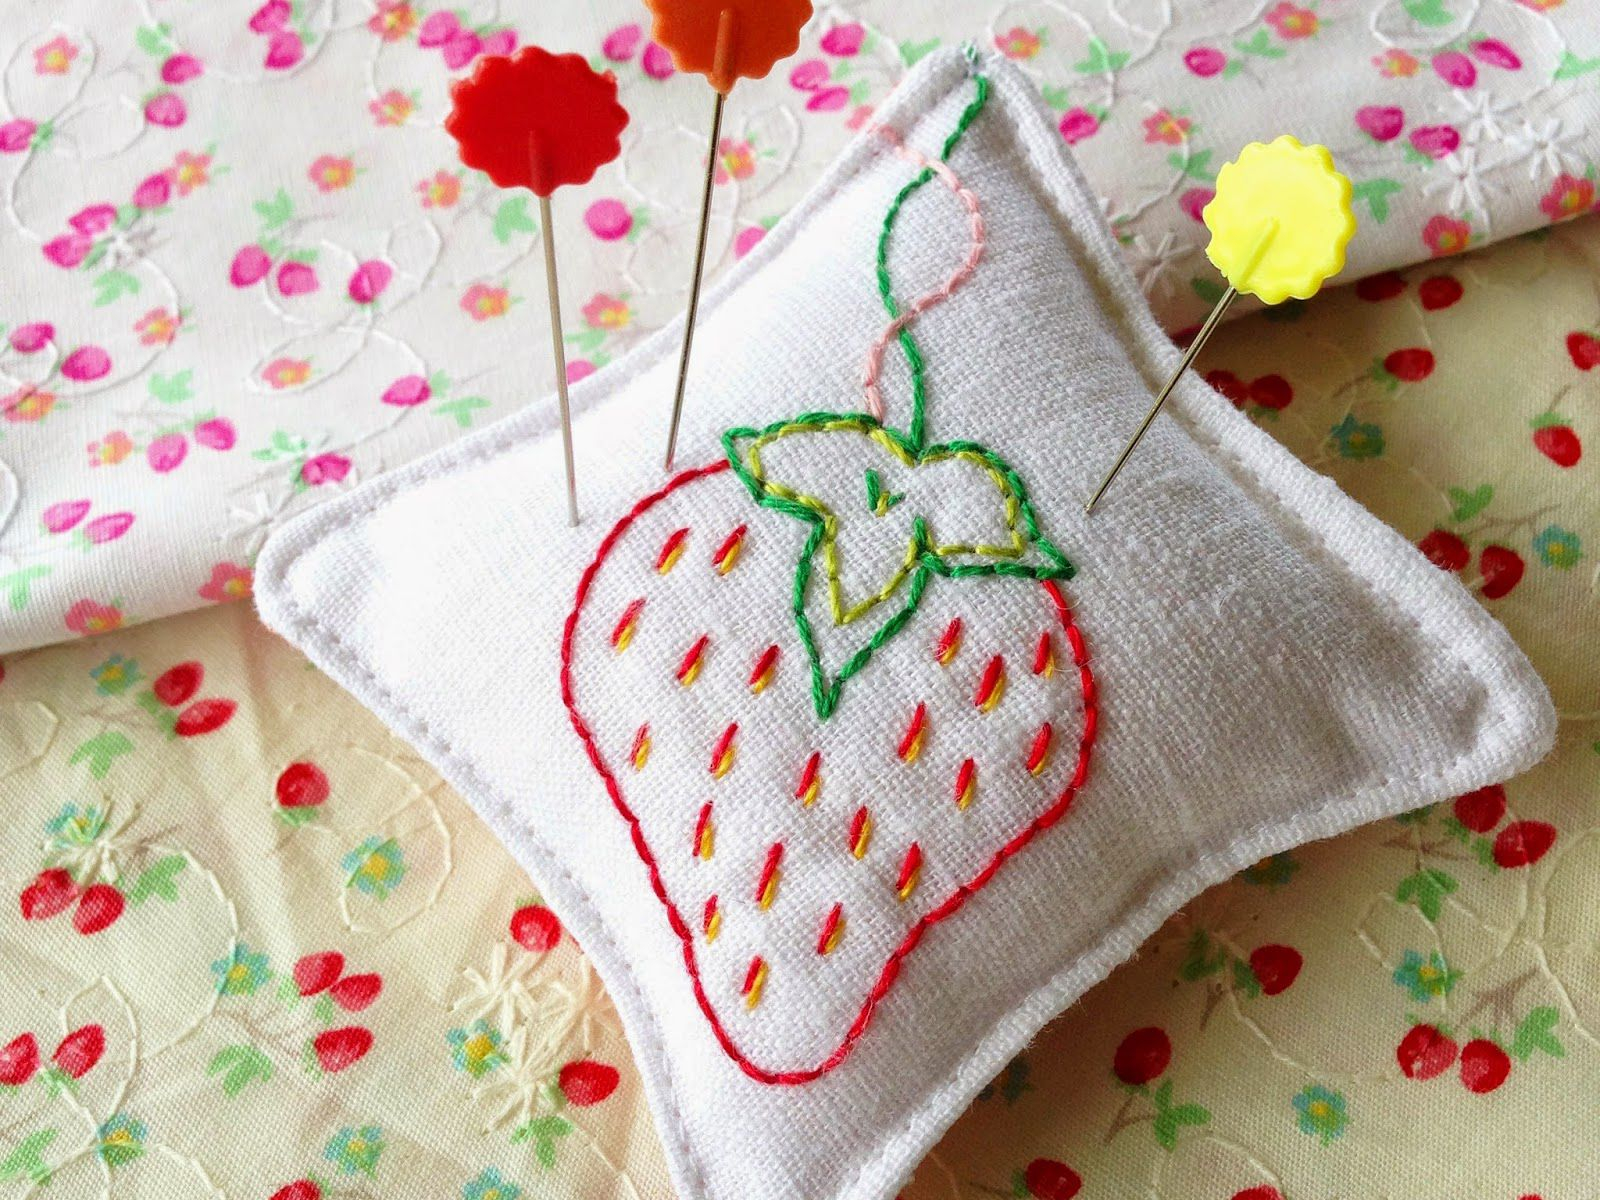 How To Make Embroidery Patterns 10 Free Embroidery Patterns For Beginners